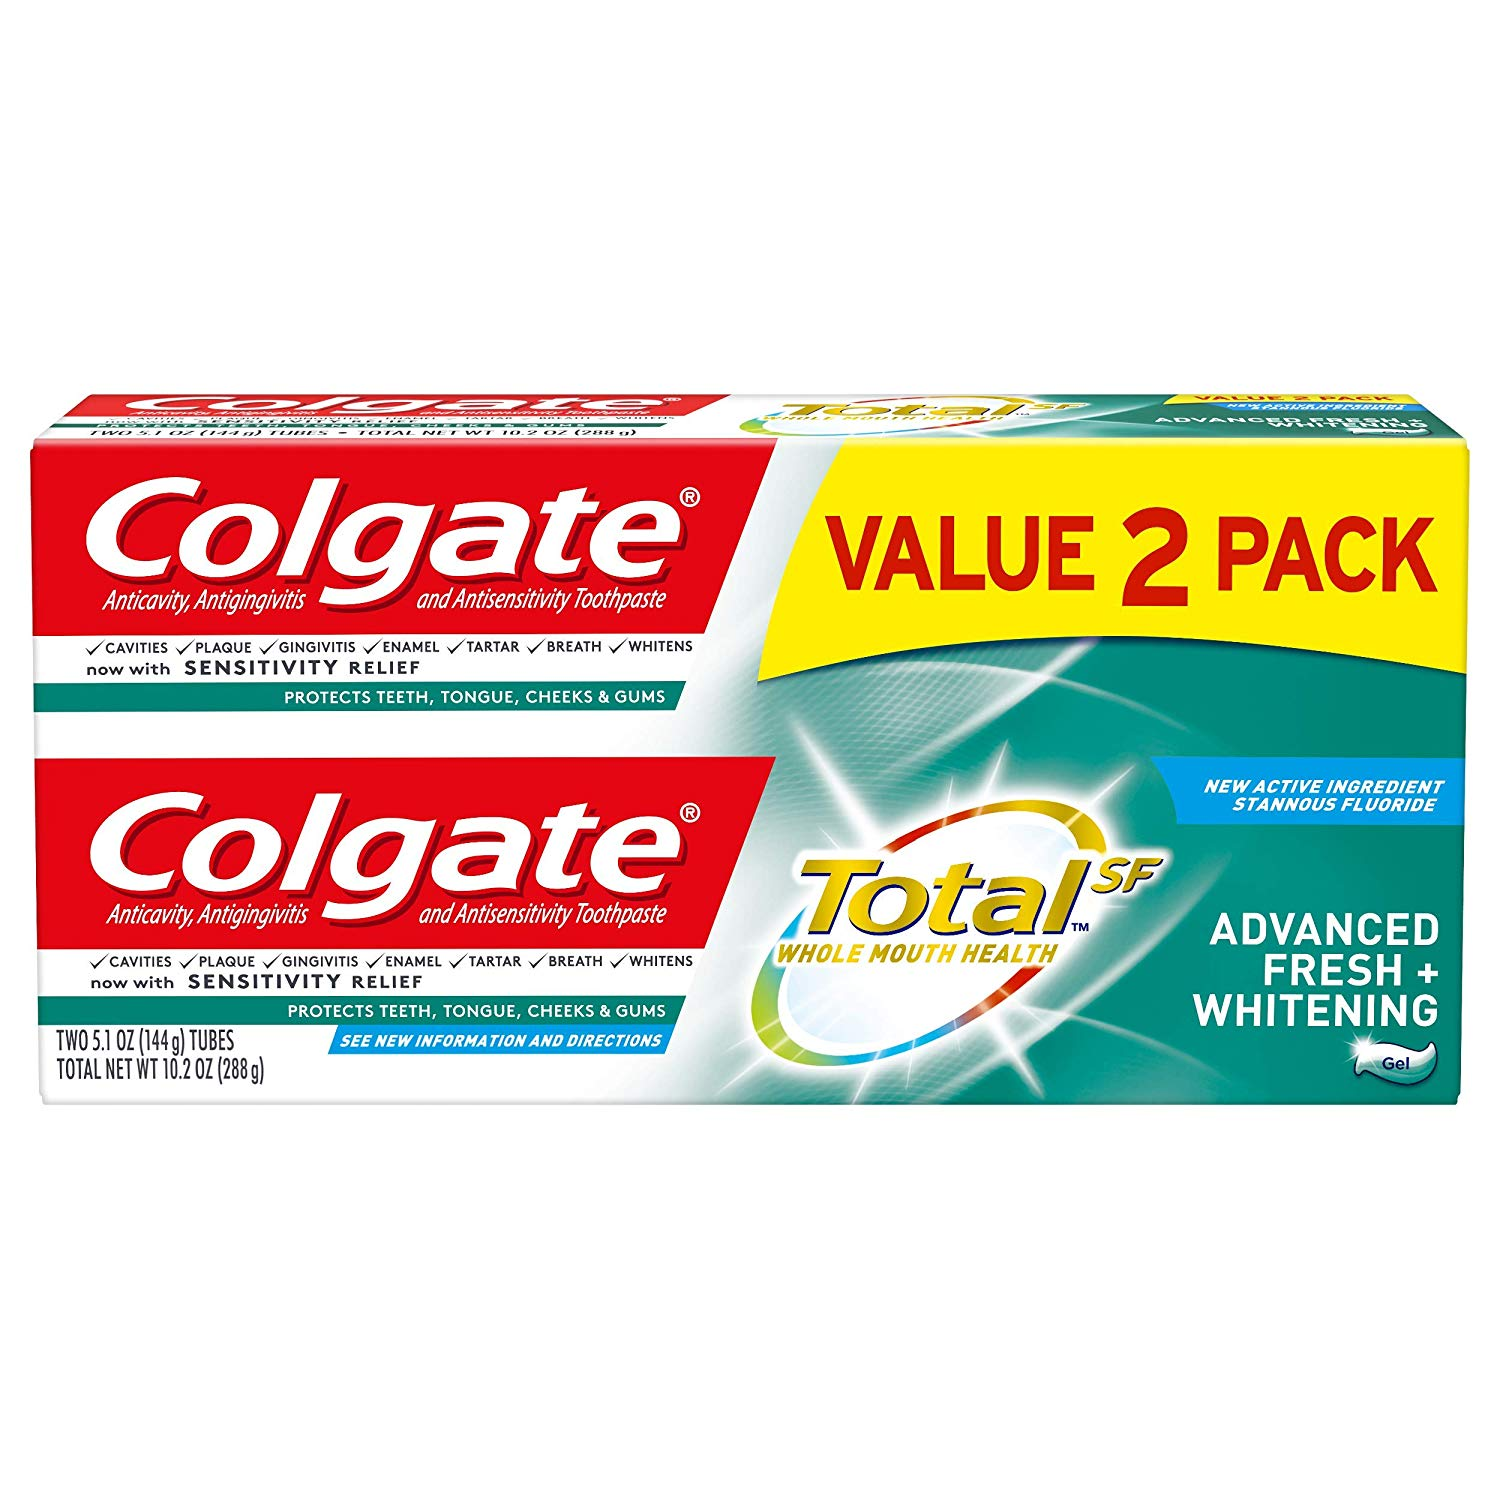 2 Pack Colgate Total Whitening Toothpaste + Whitening Gel only $3.26! (was $9.34)